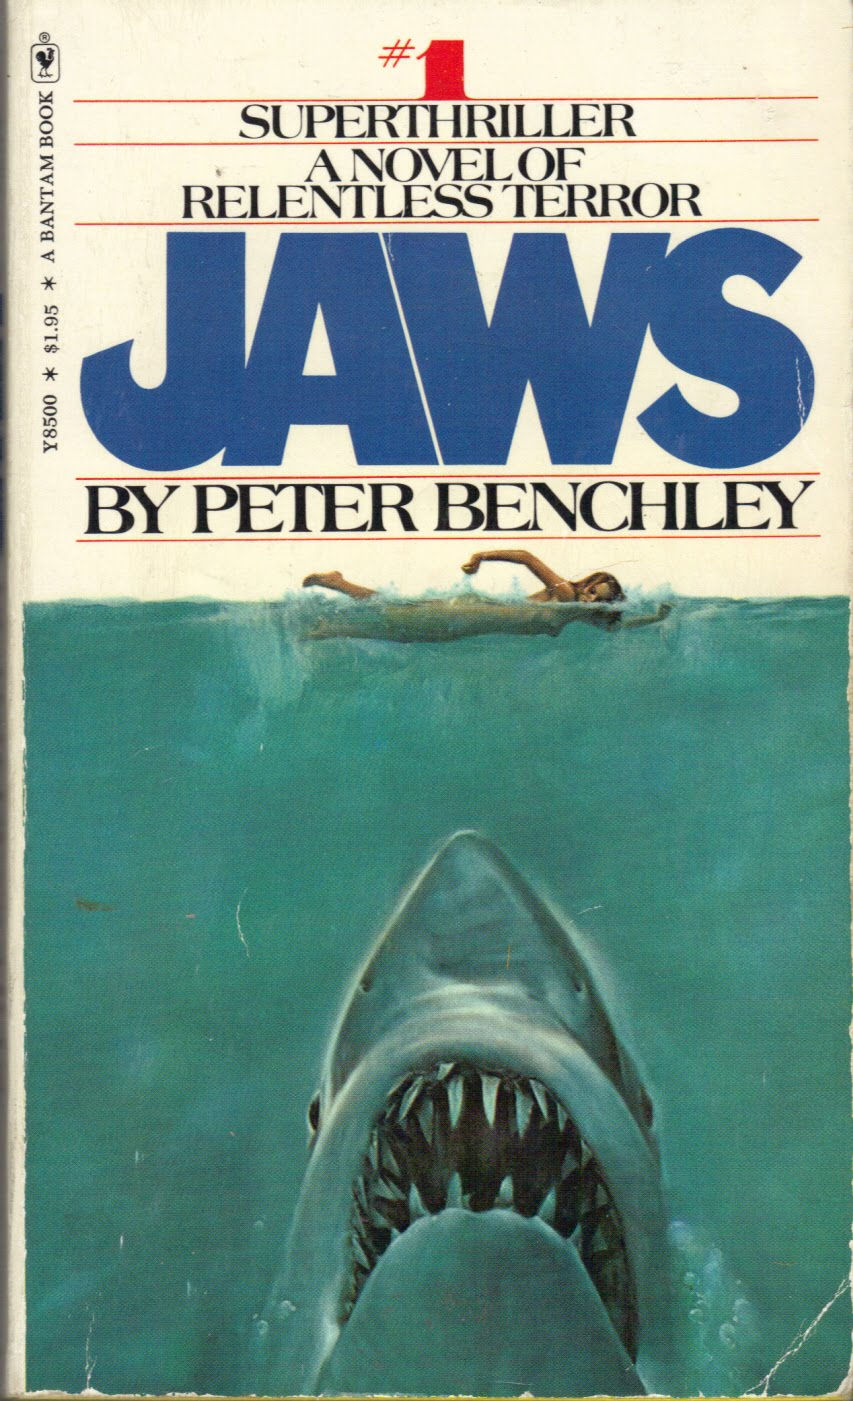 Jaws Book Cover Art ~ Too much horror fiction jaws by peter benchley the amity